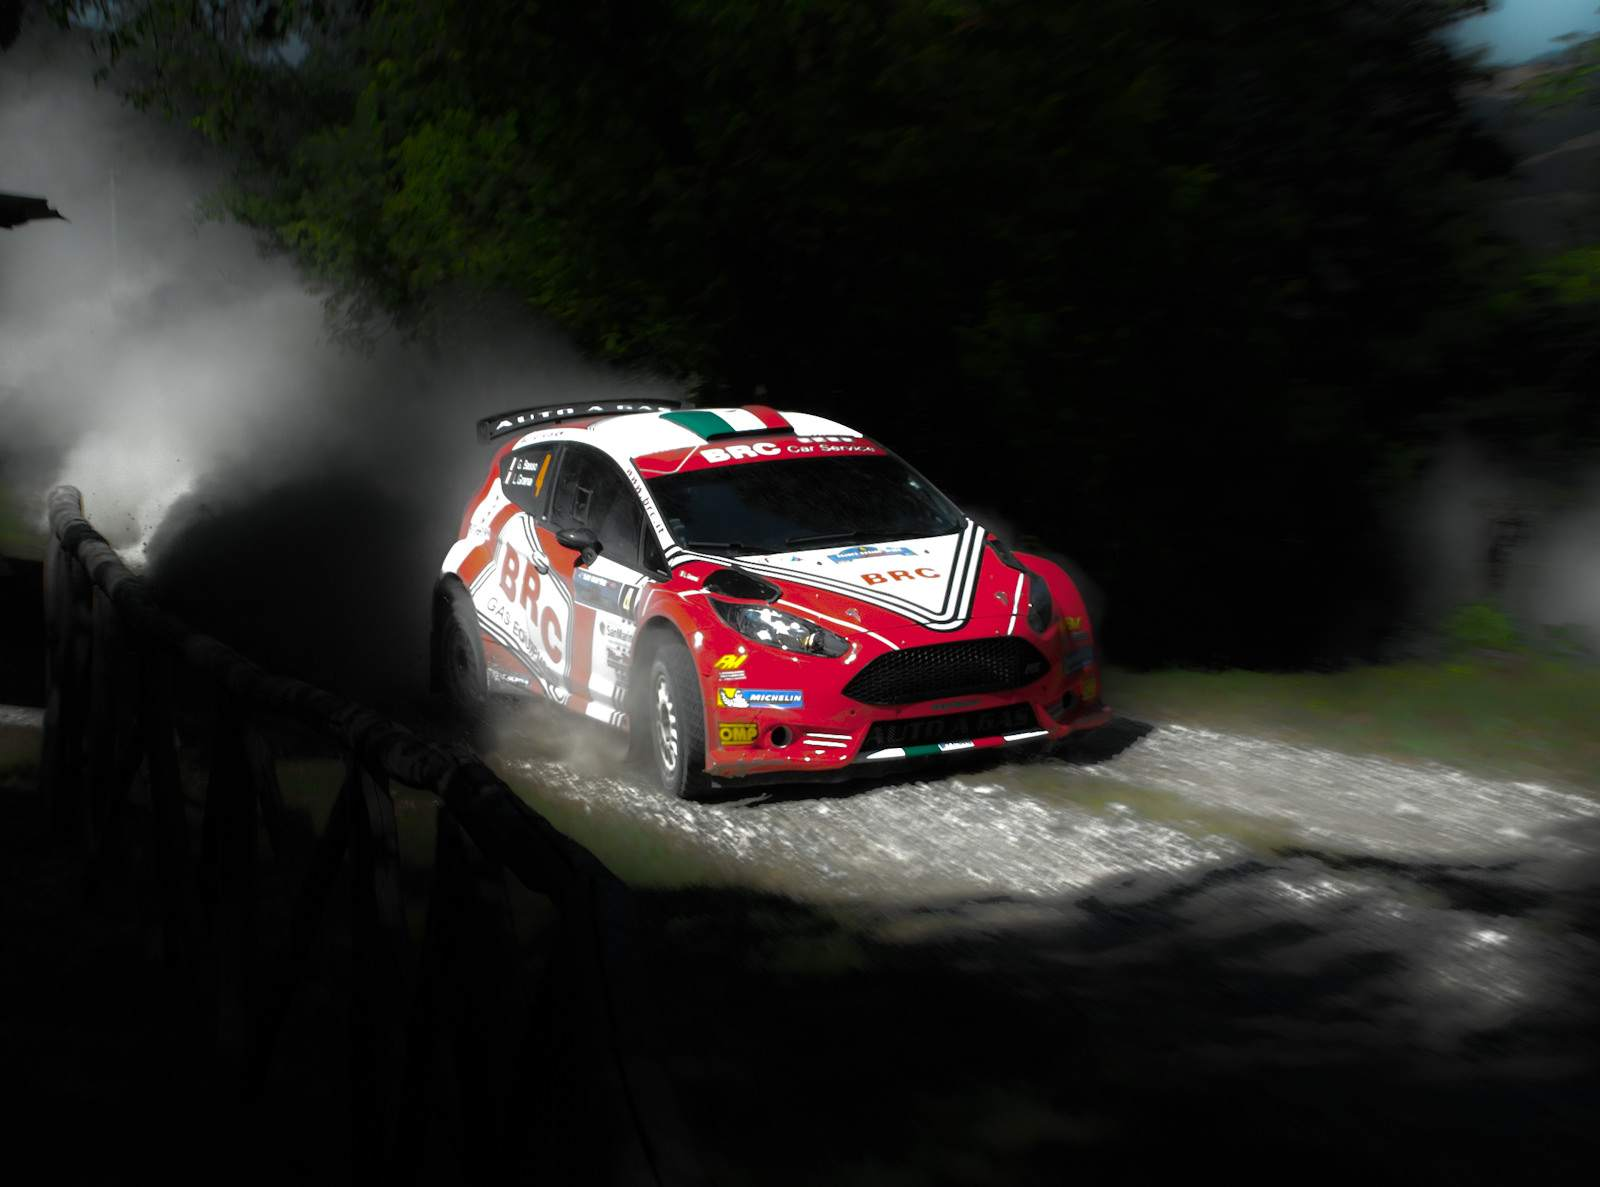 rally san marino 43th Rally San Marino 2015 Photos